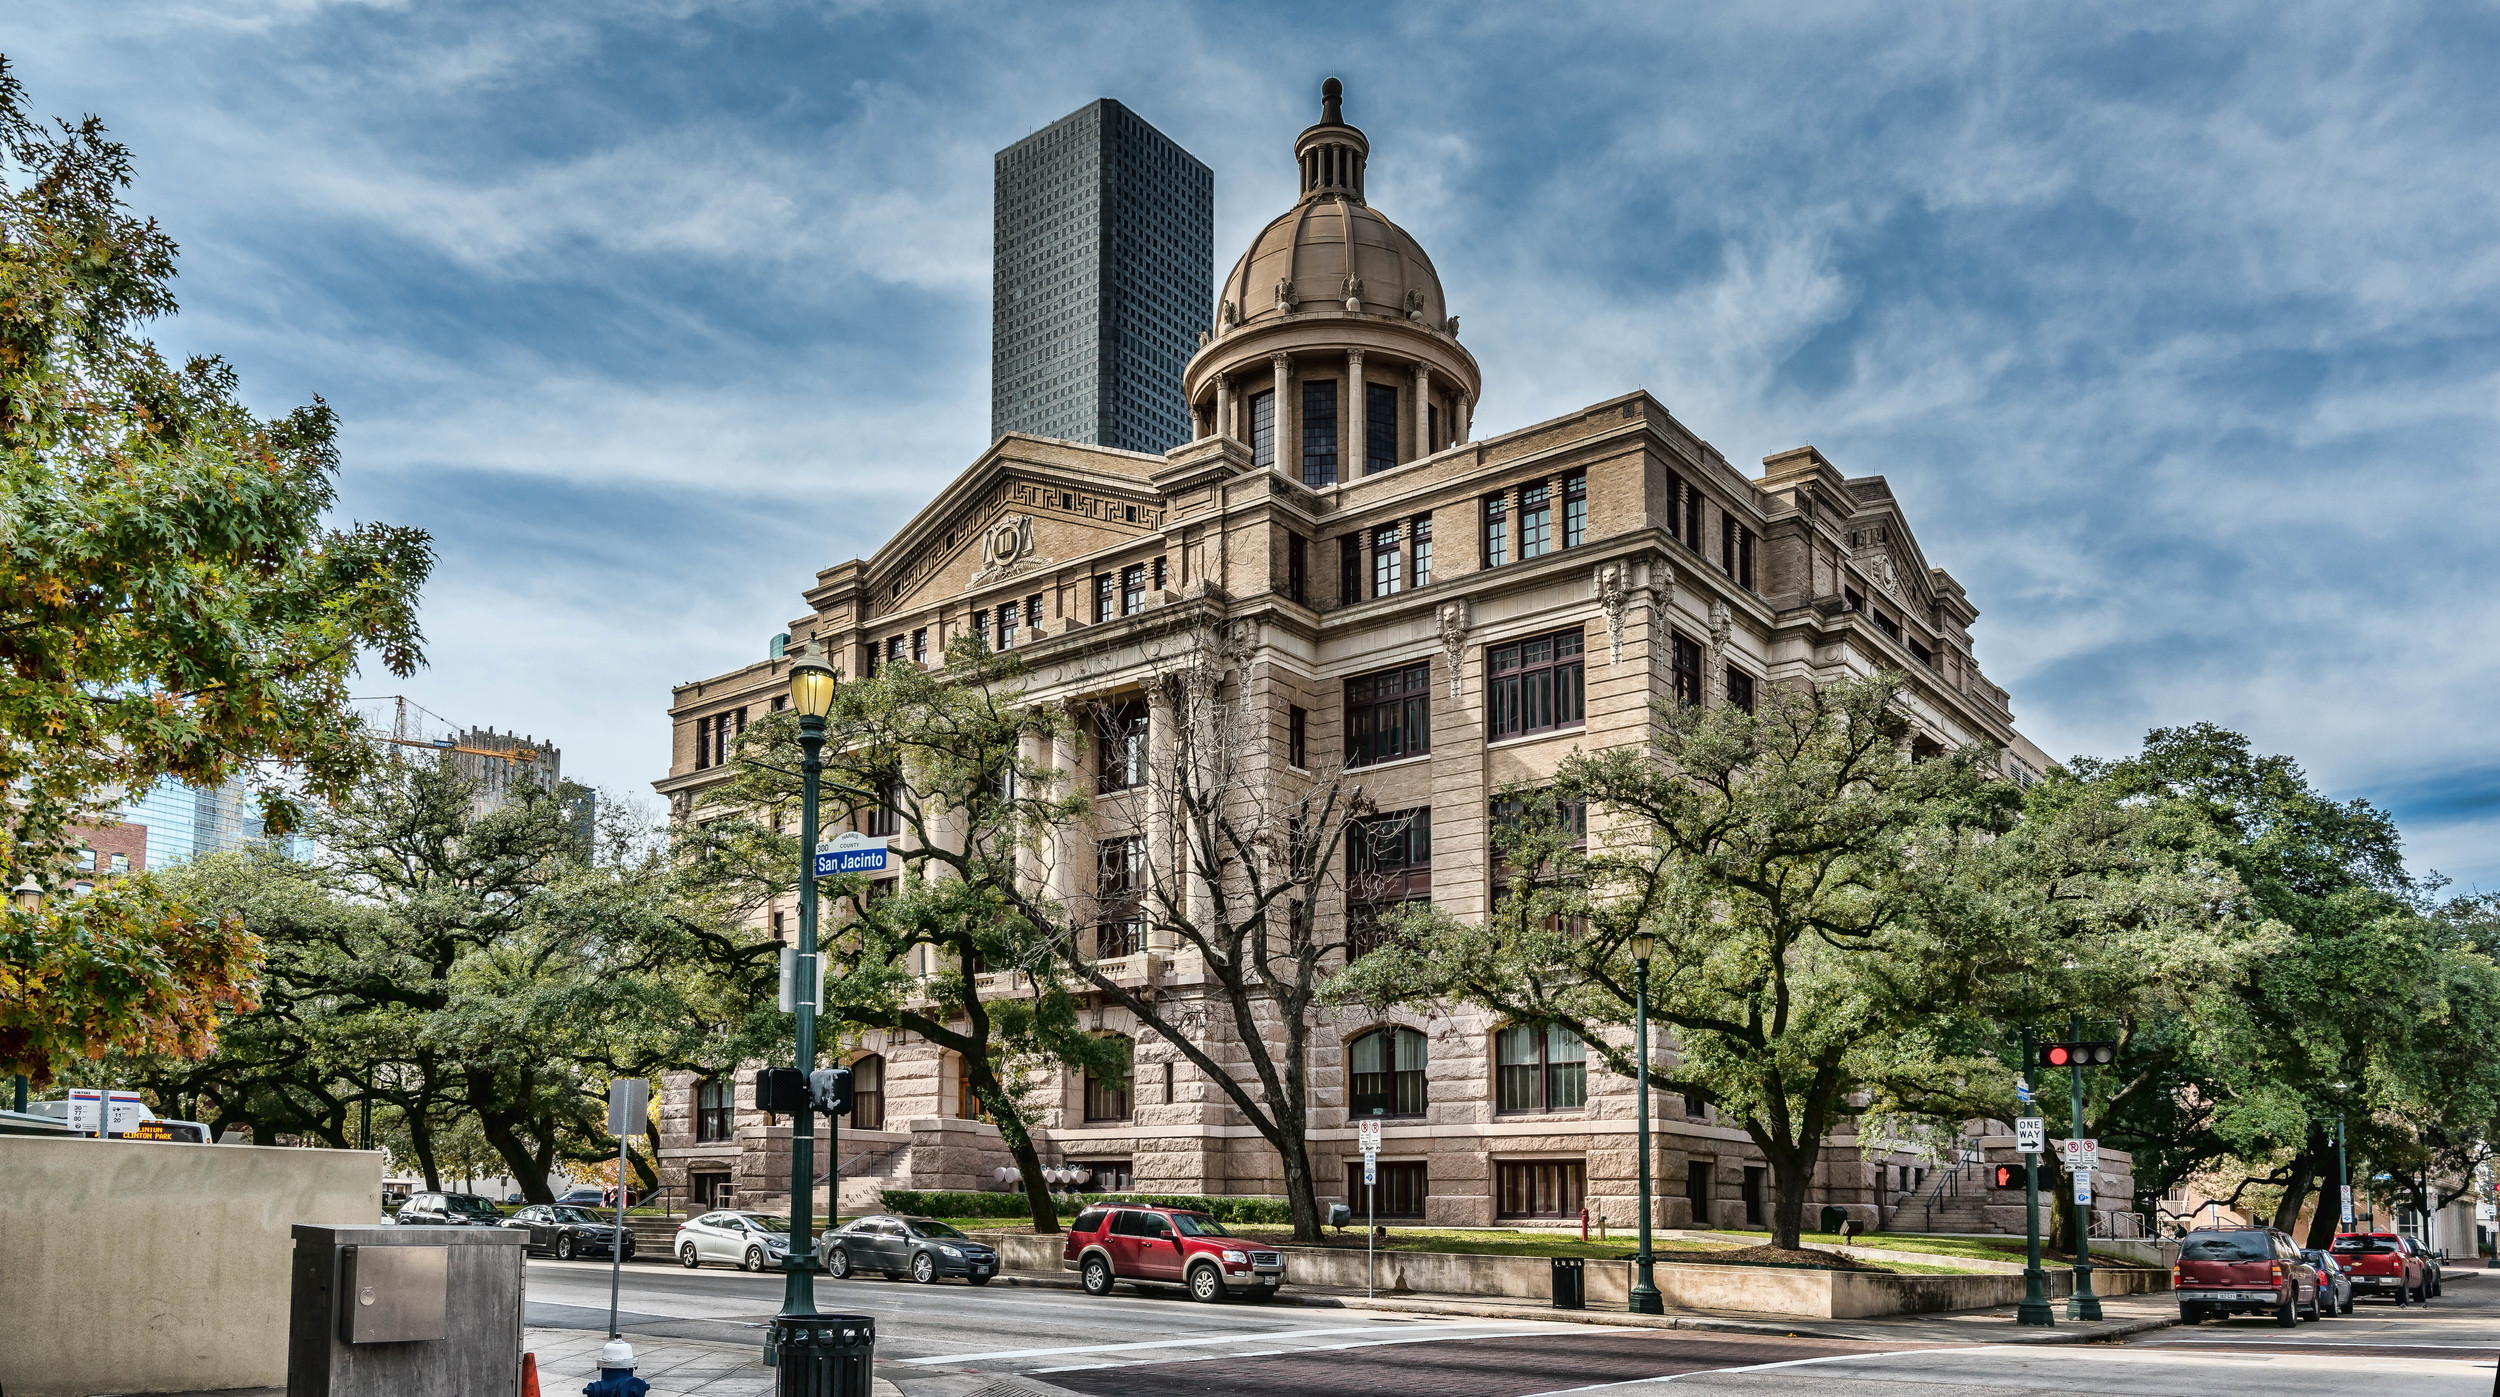 Houston court building2.jpg